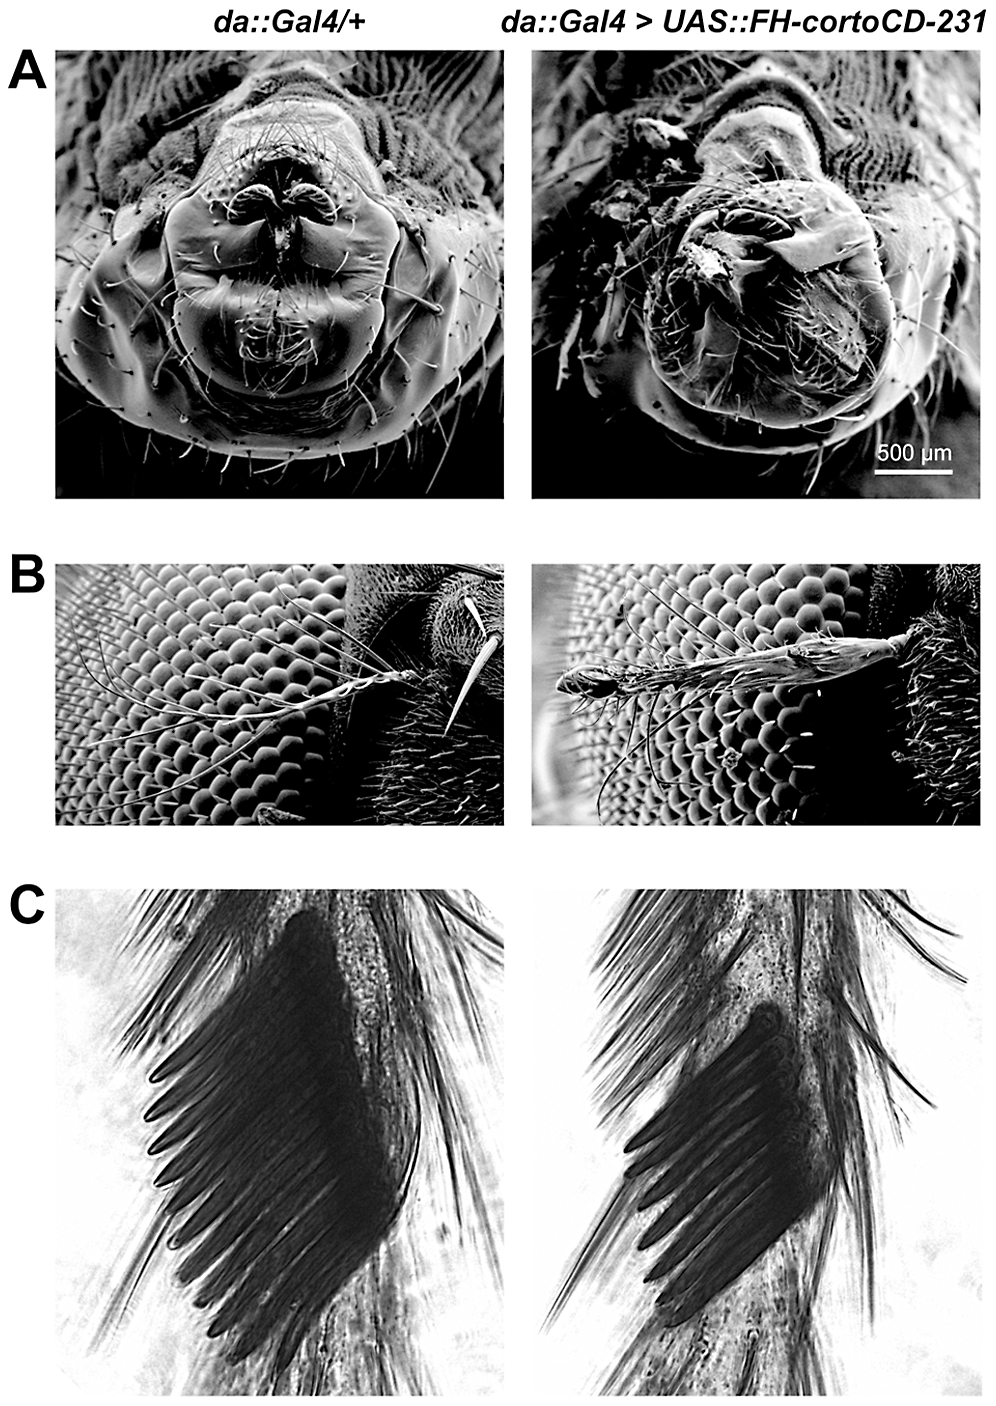 Phenotype of transgenic flies over-expressing <i>cortoCD</i>.